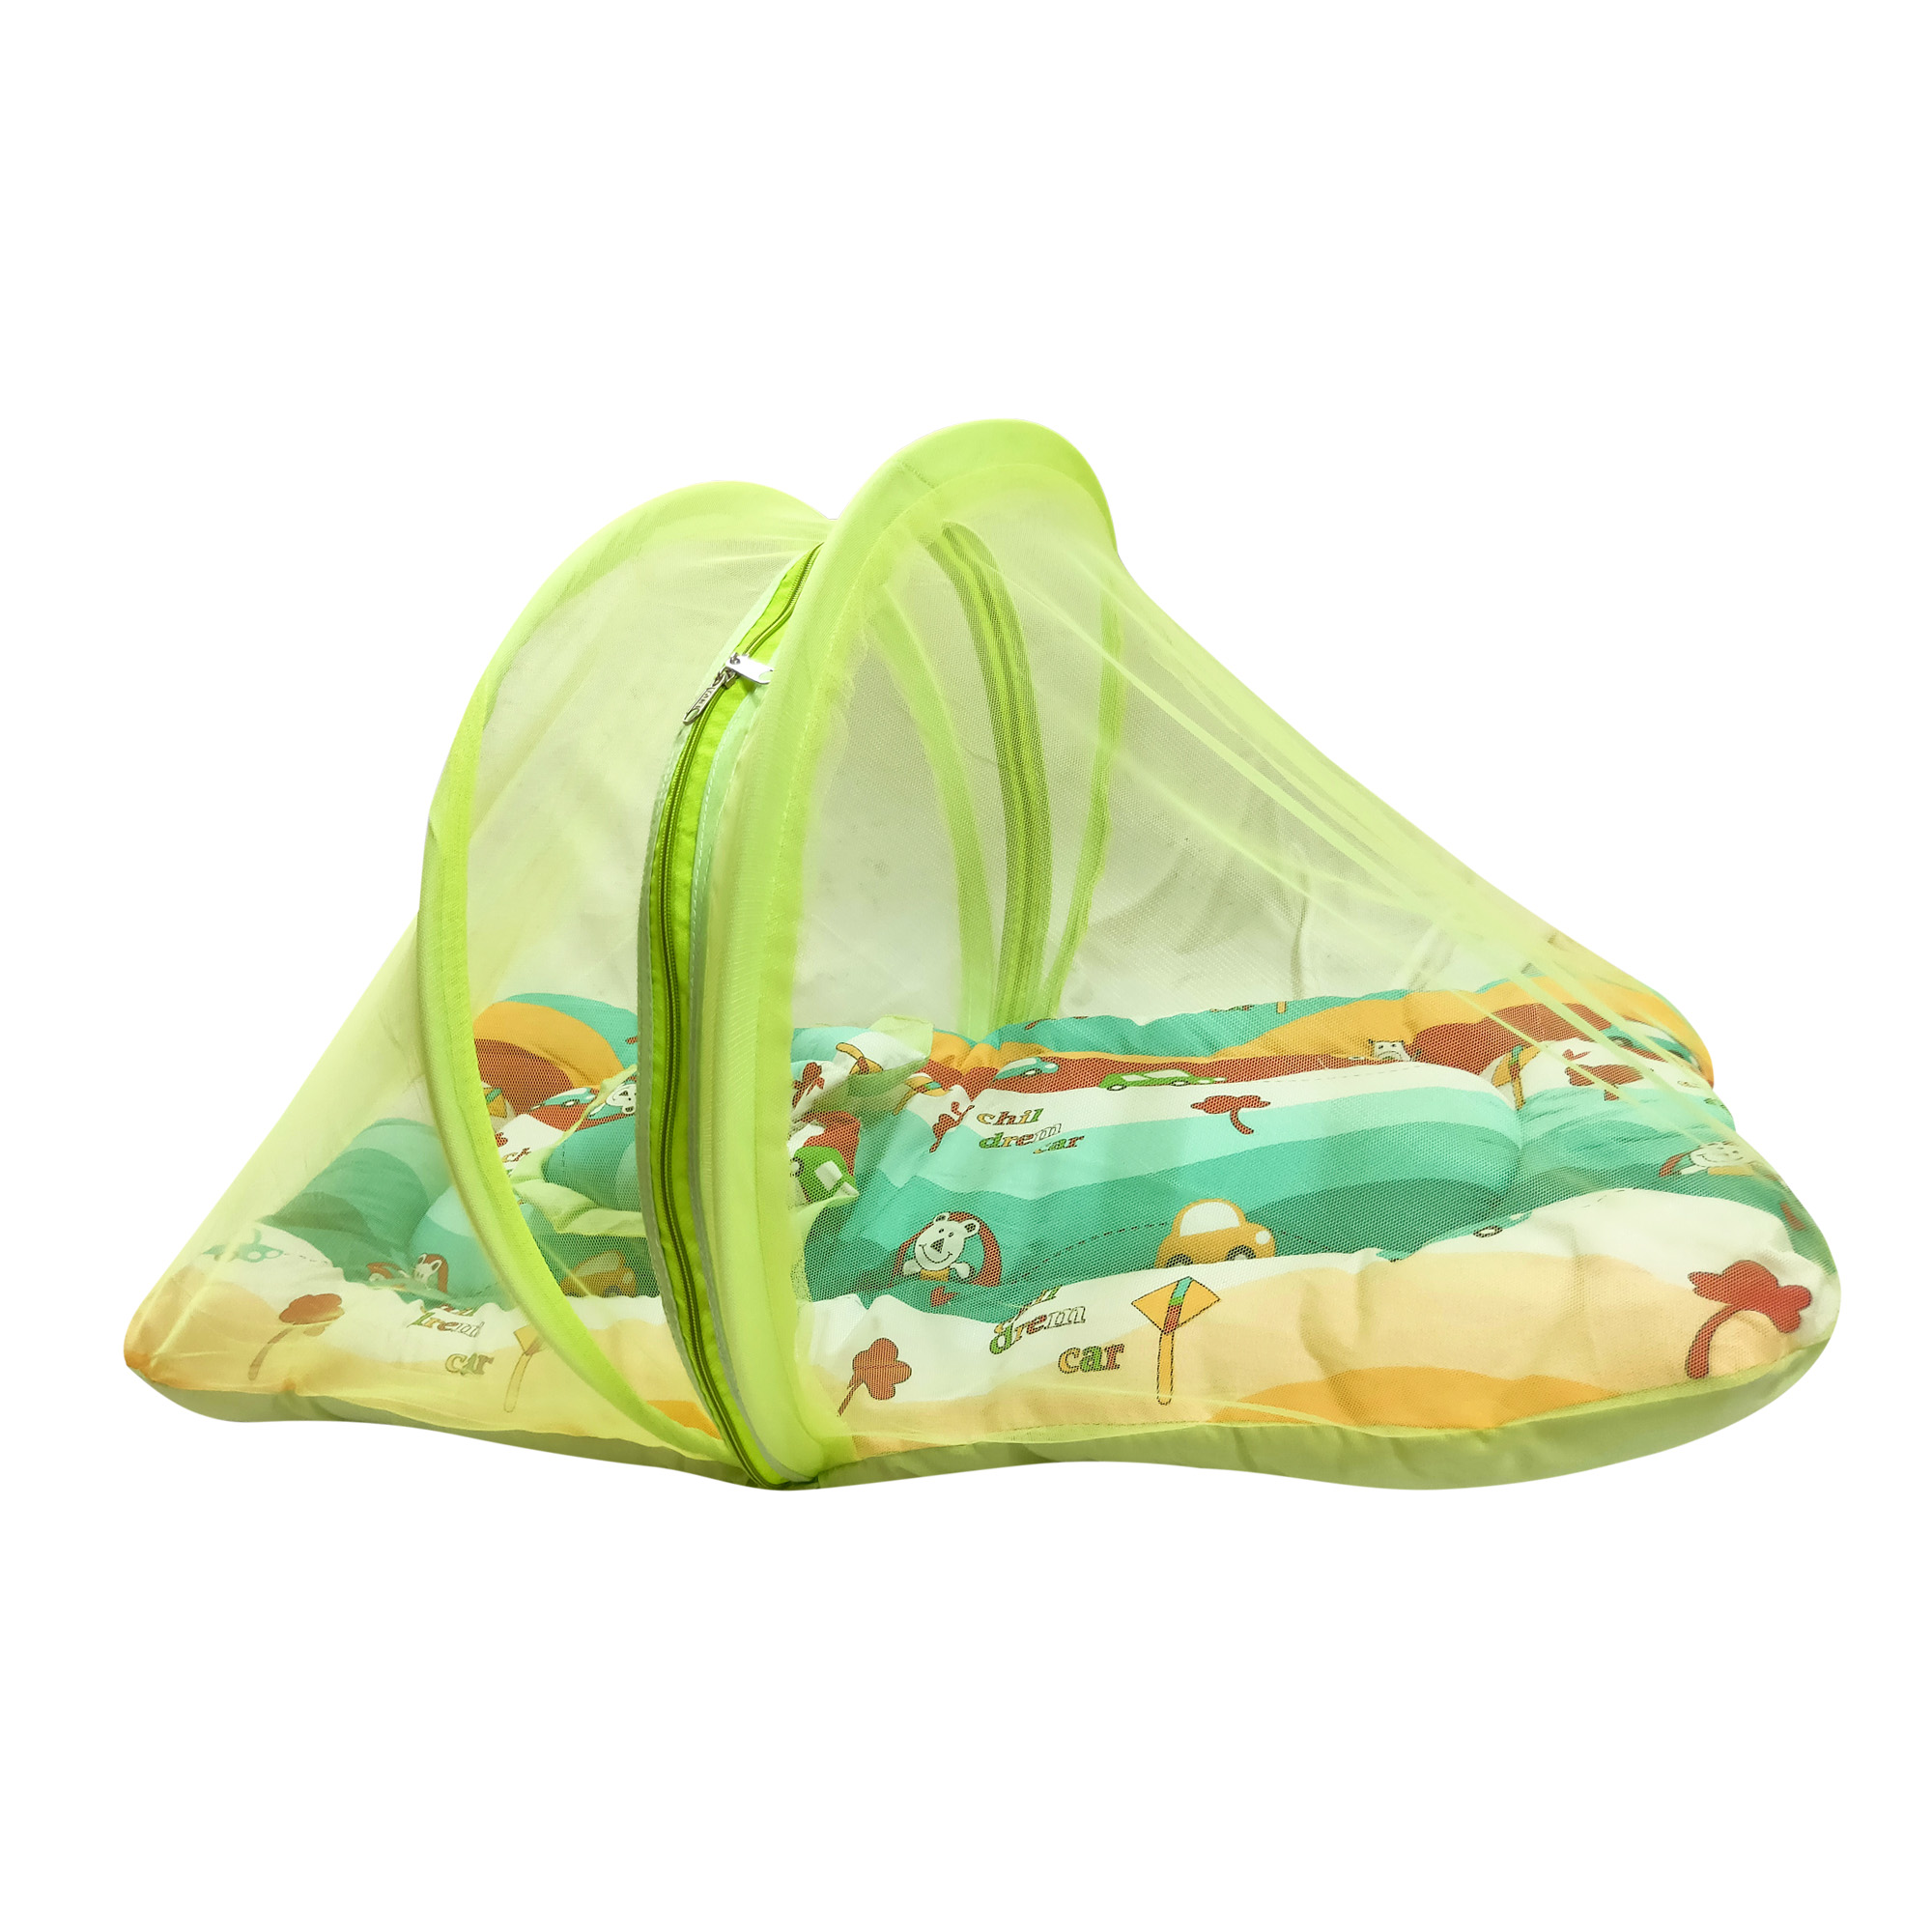 Imported Cotton Mosquito Net Set Medium 0 to 24 months from Love Baby - ST30 Green P10